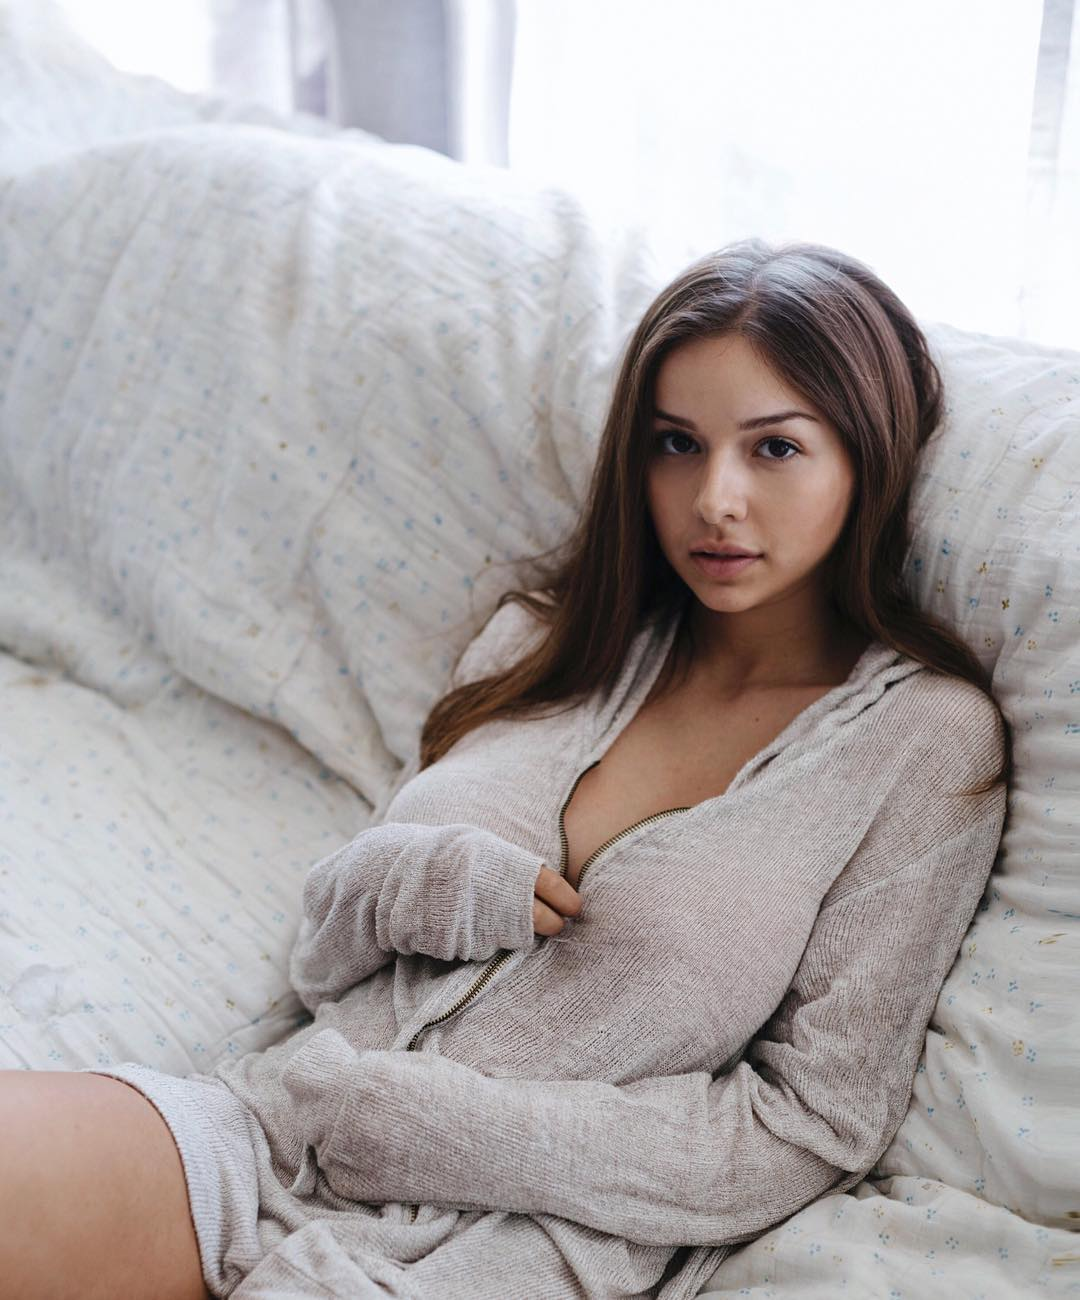 Cleavage Sophie Mudd nudes (11 photos), Tits, Sideboobs, Instagram, butt 2020